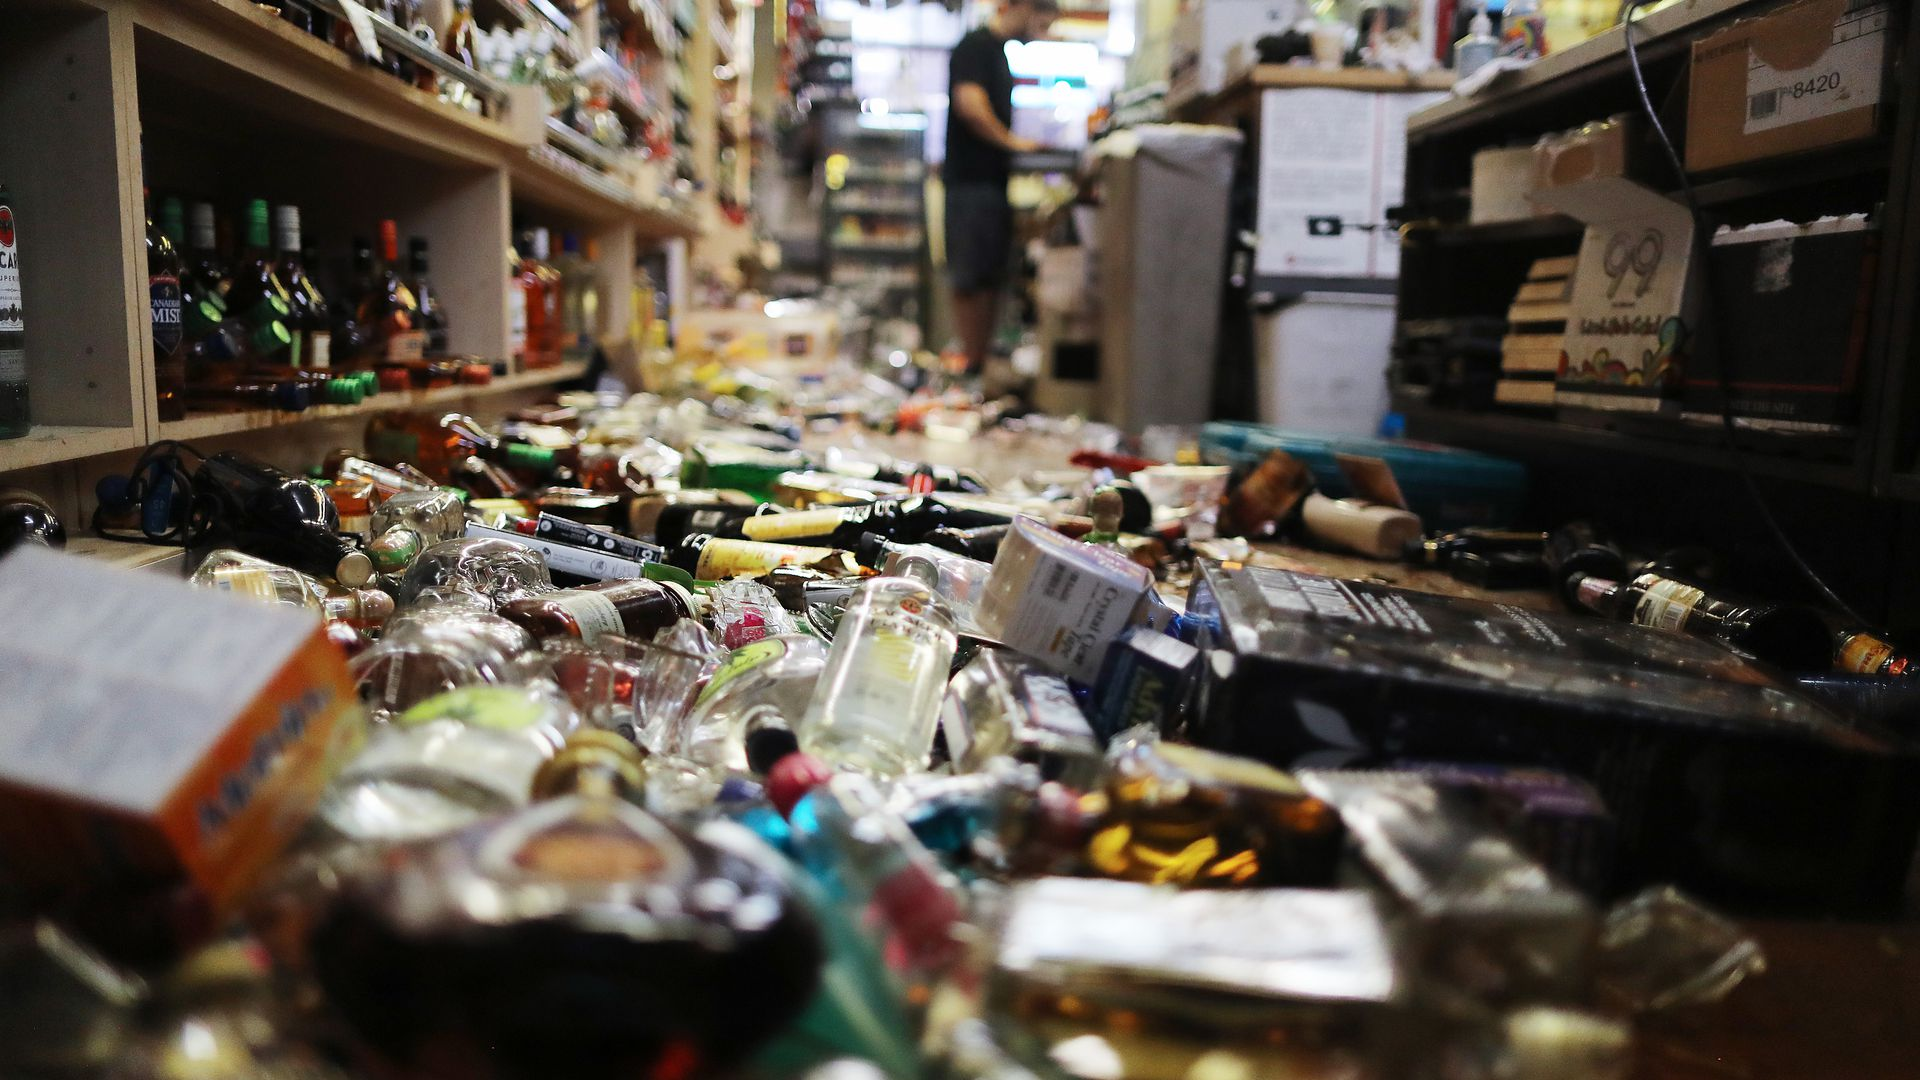 Damage at a store in Southern California following 2 major earthquakes